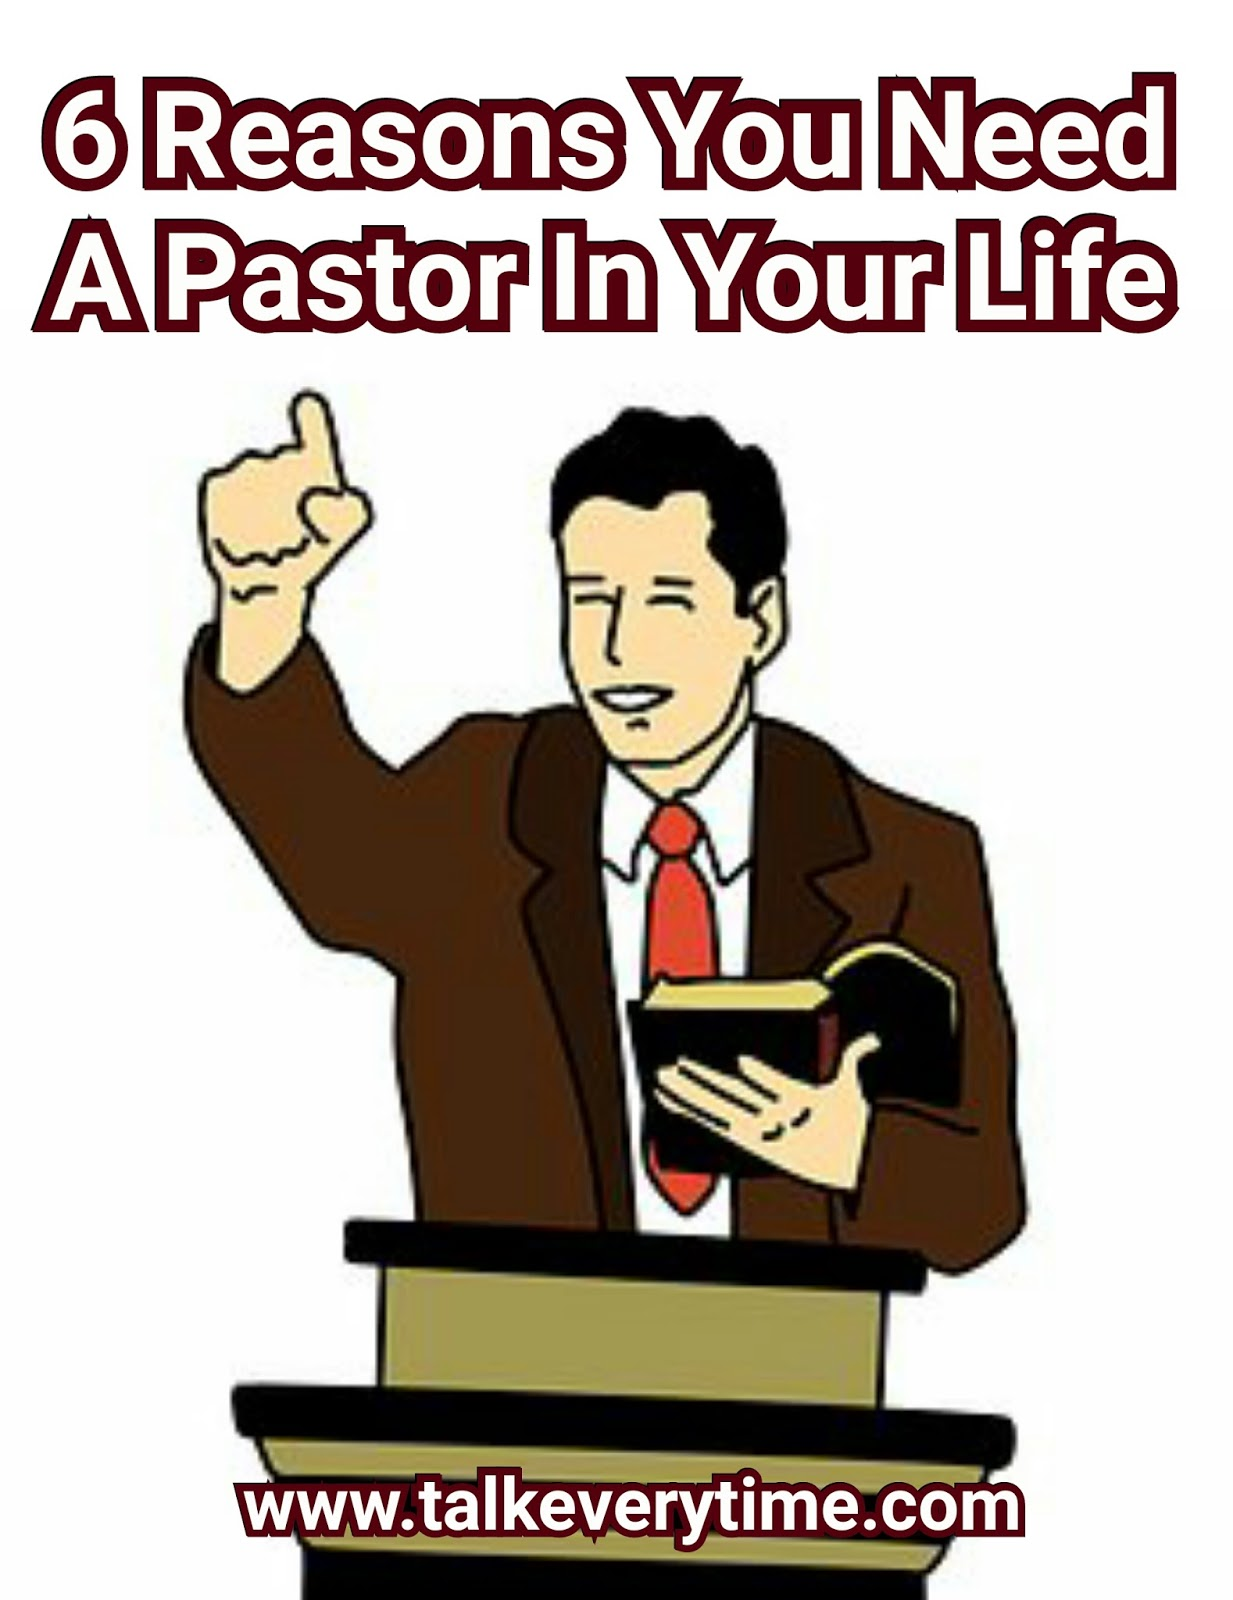 6 Reasons You Need A Pastor In Your life